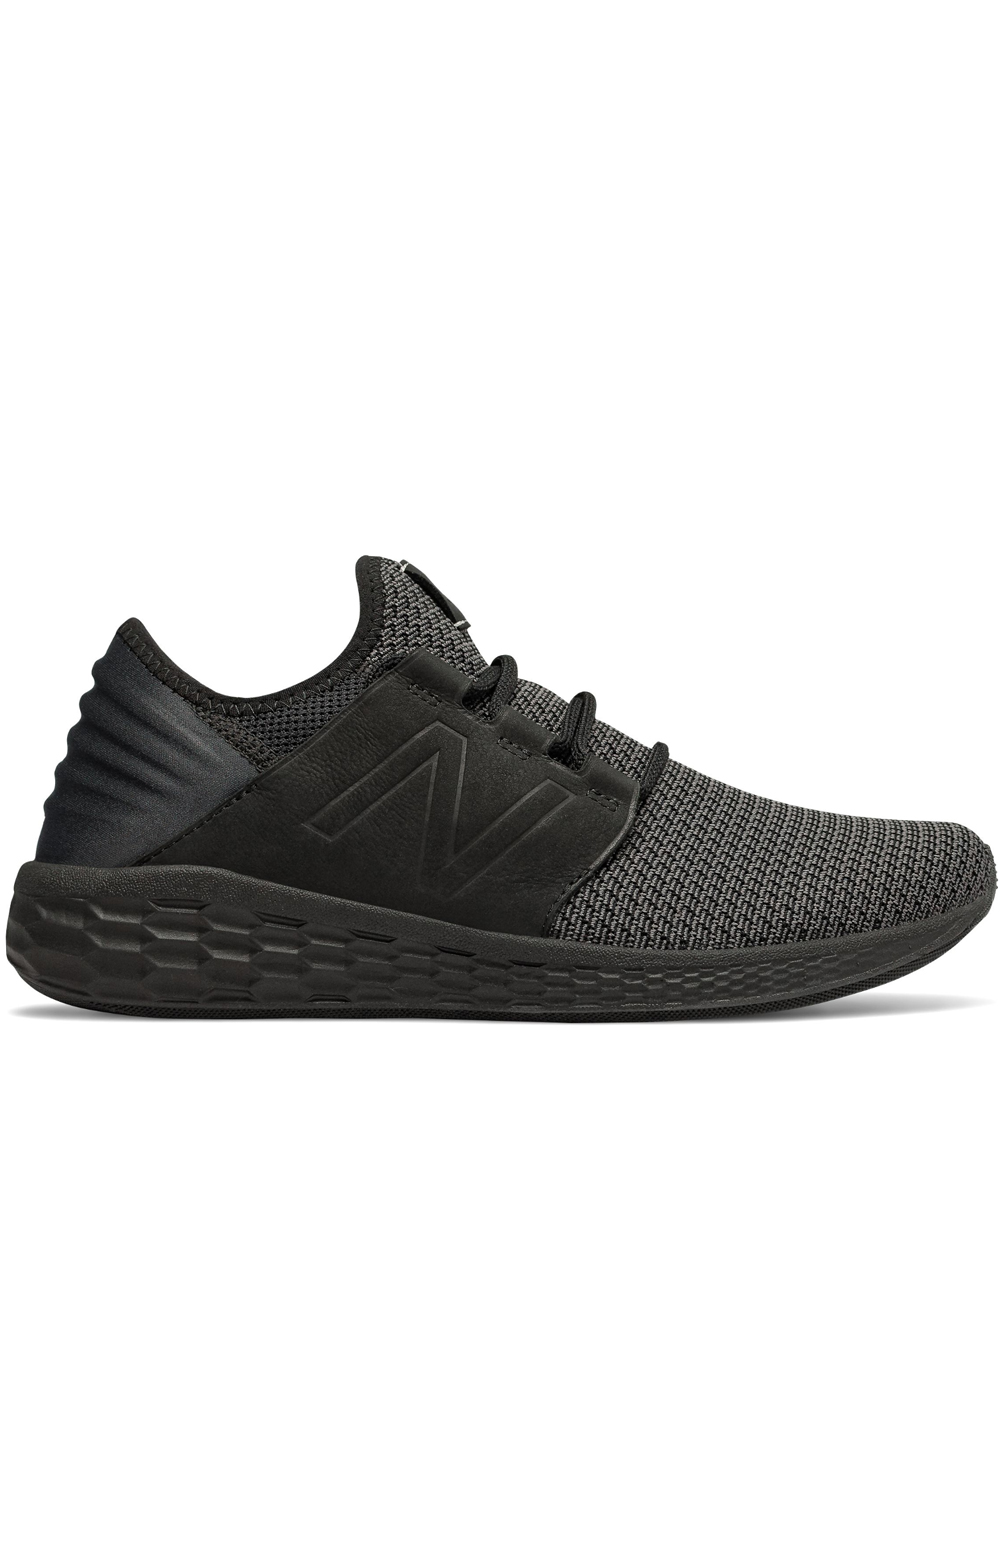 New Balance, (MCRUZNB2) Fresh Foam Cruz v2 Nubuck Shoe - Black